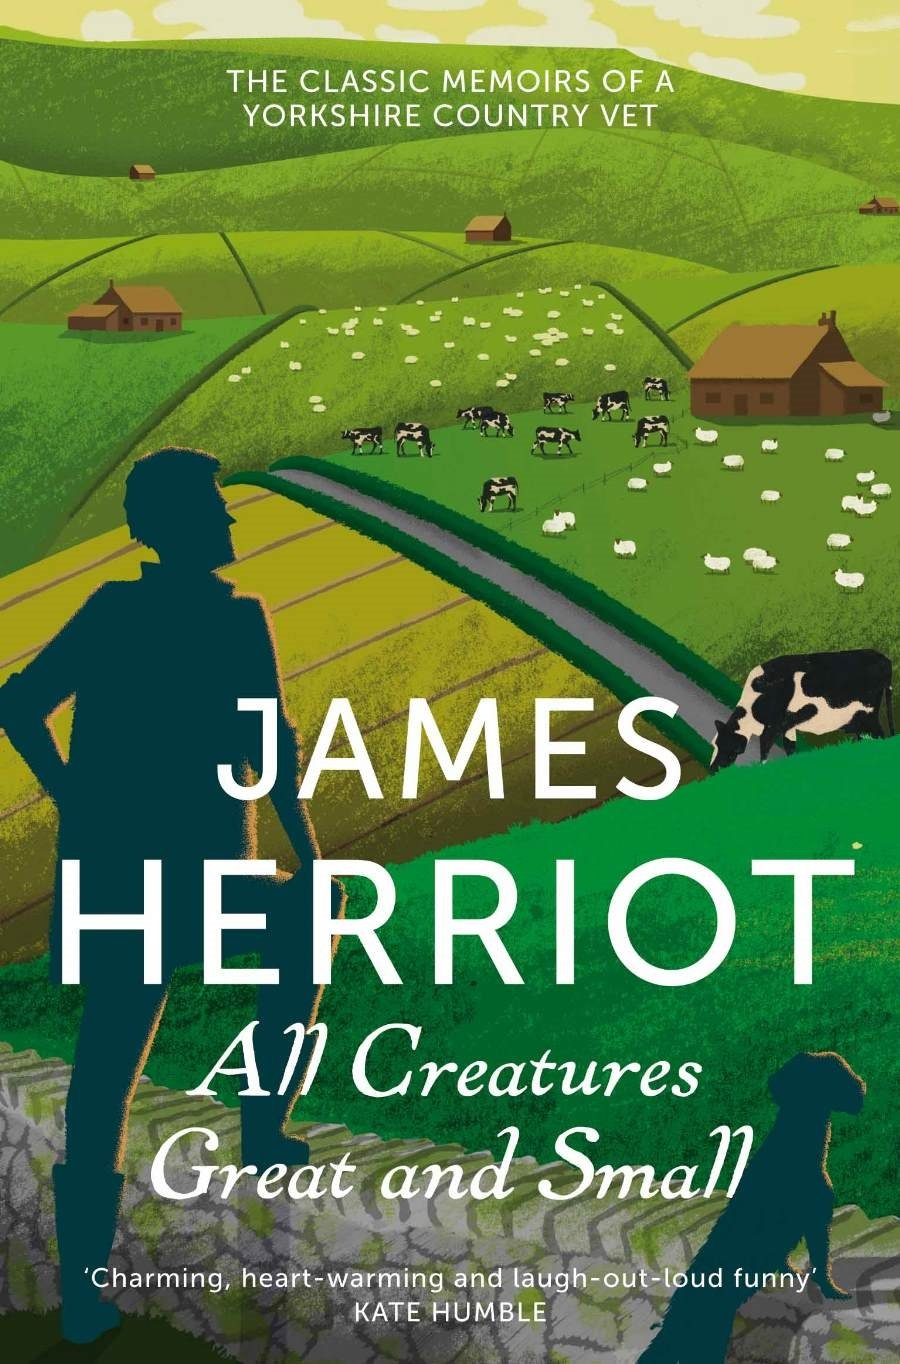 All Creatures Great and Small: The Classic Memoirs of a Yorkshire Country  Vet: Amazon.co.uk: James Herriot: 9781447225997: Books